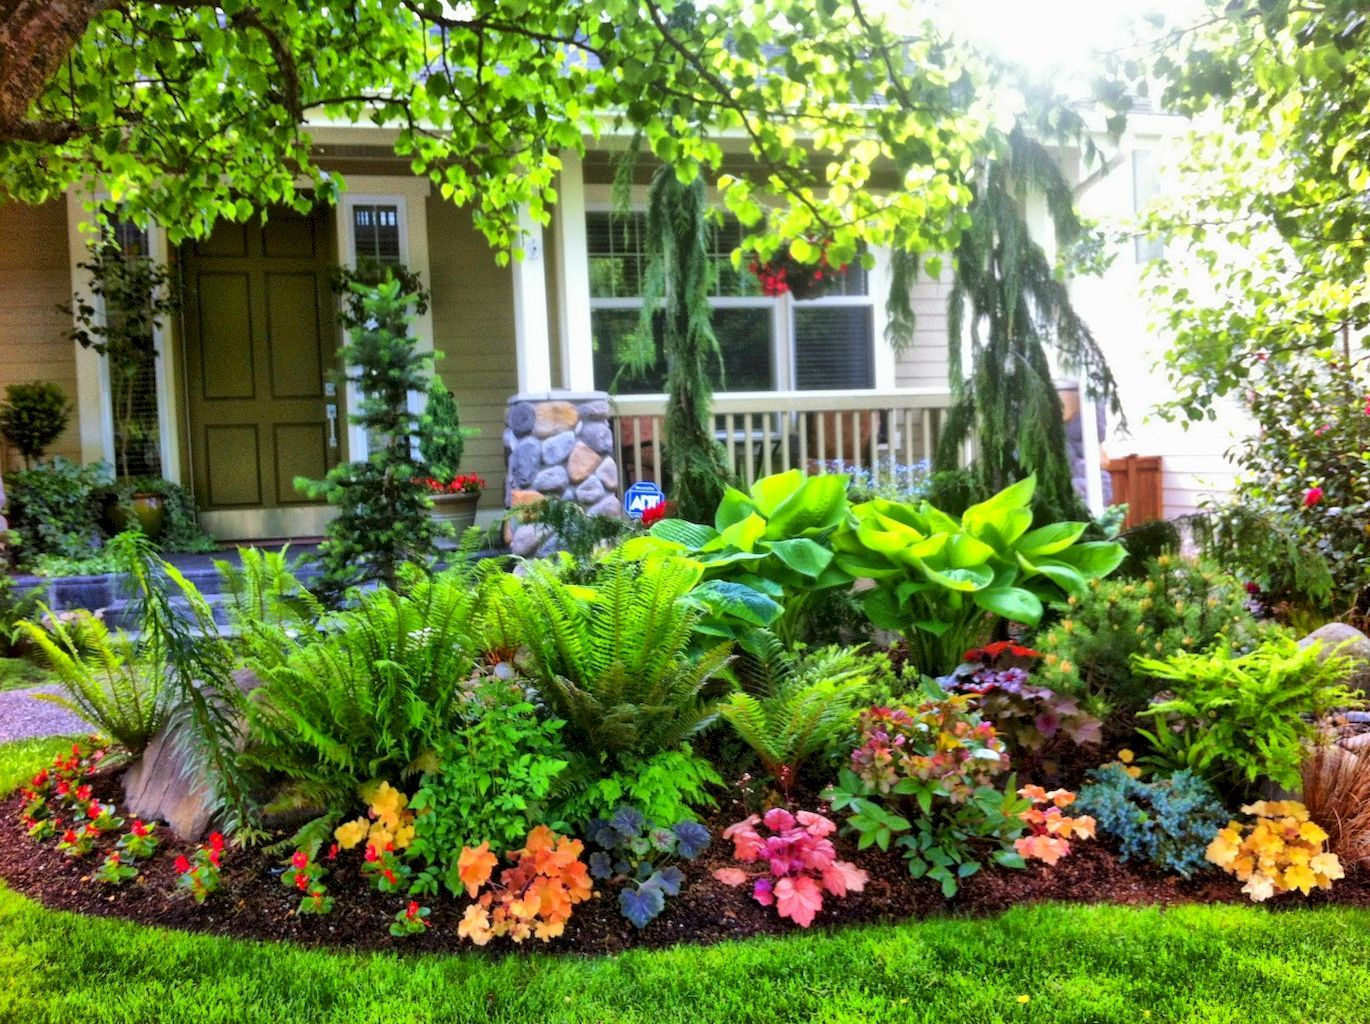 Awesome 45 Fresh And Beautiful Front Yard Landscaping Ideas On A Budget Livinking